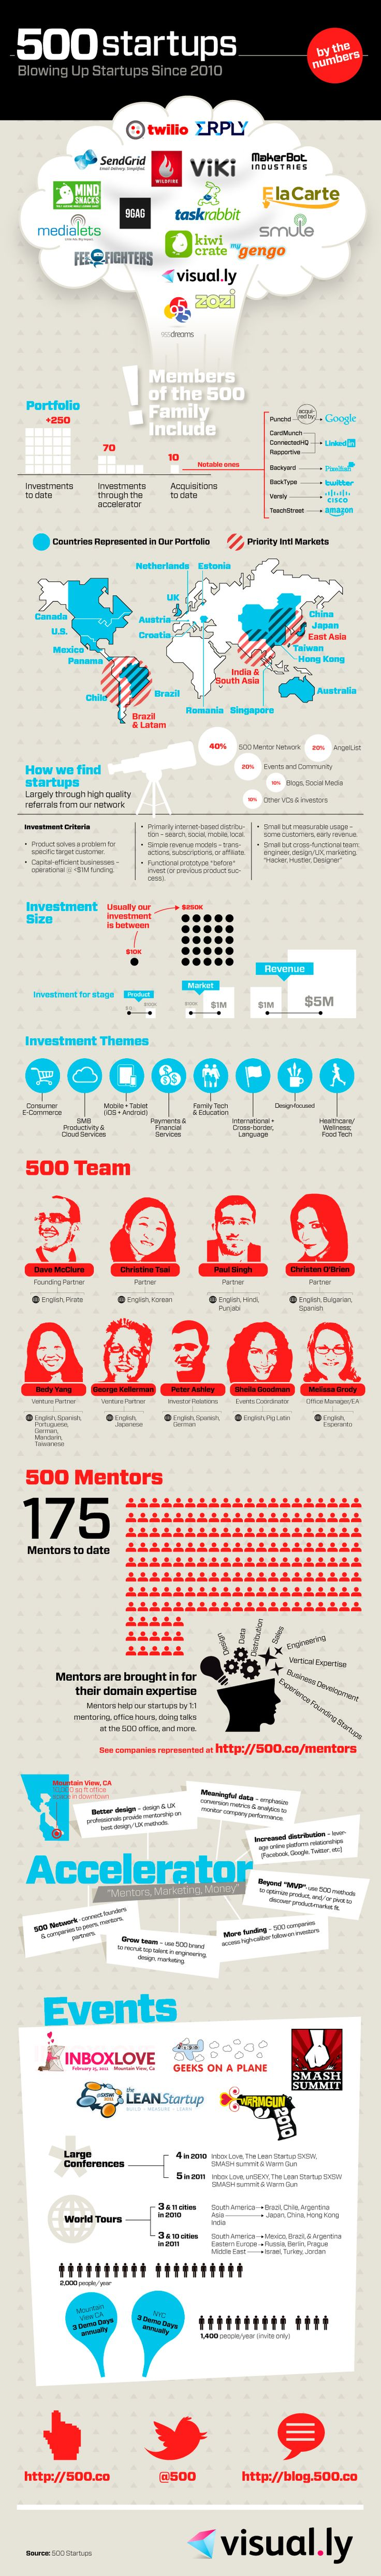 500 Startups Raising New $50M Fund, Names 4 New Partners, With 250+ Investments To Date   TechCrunch